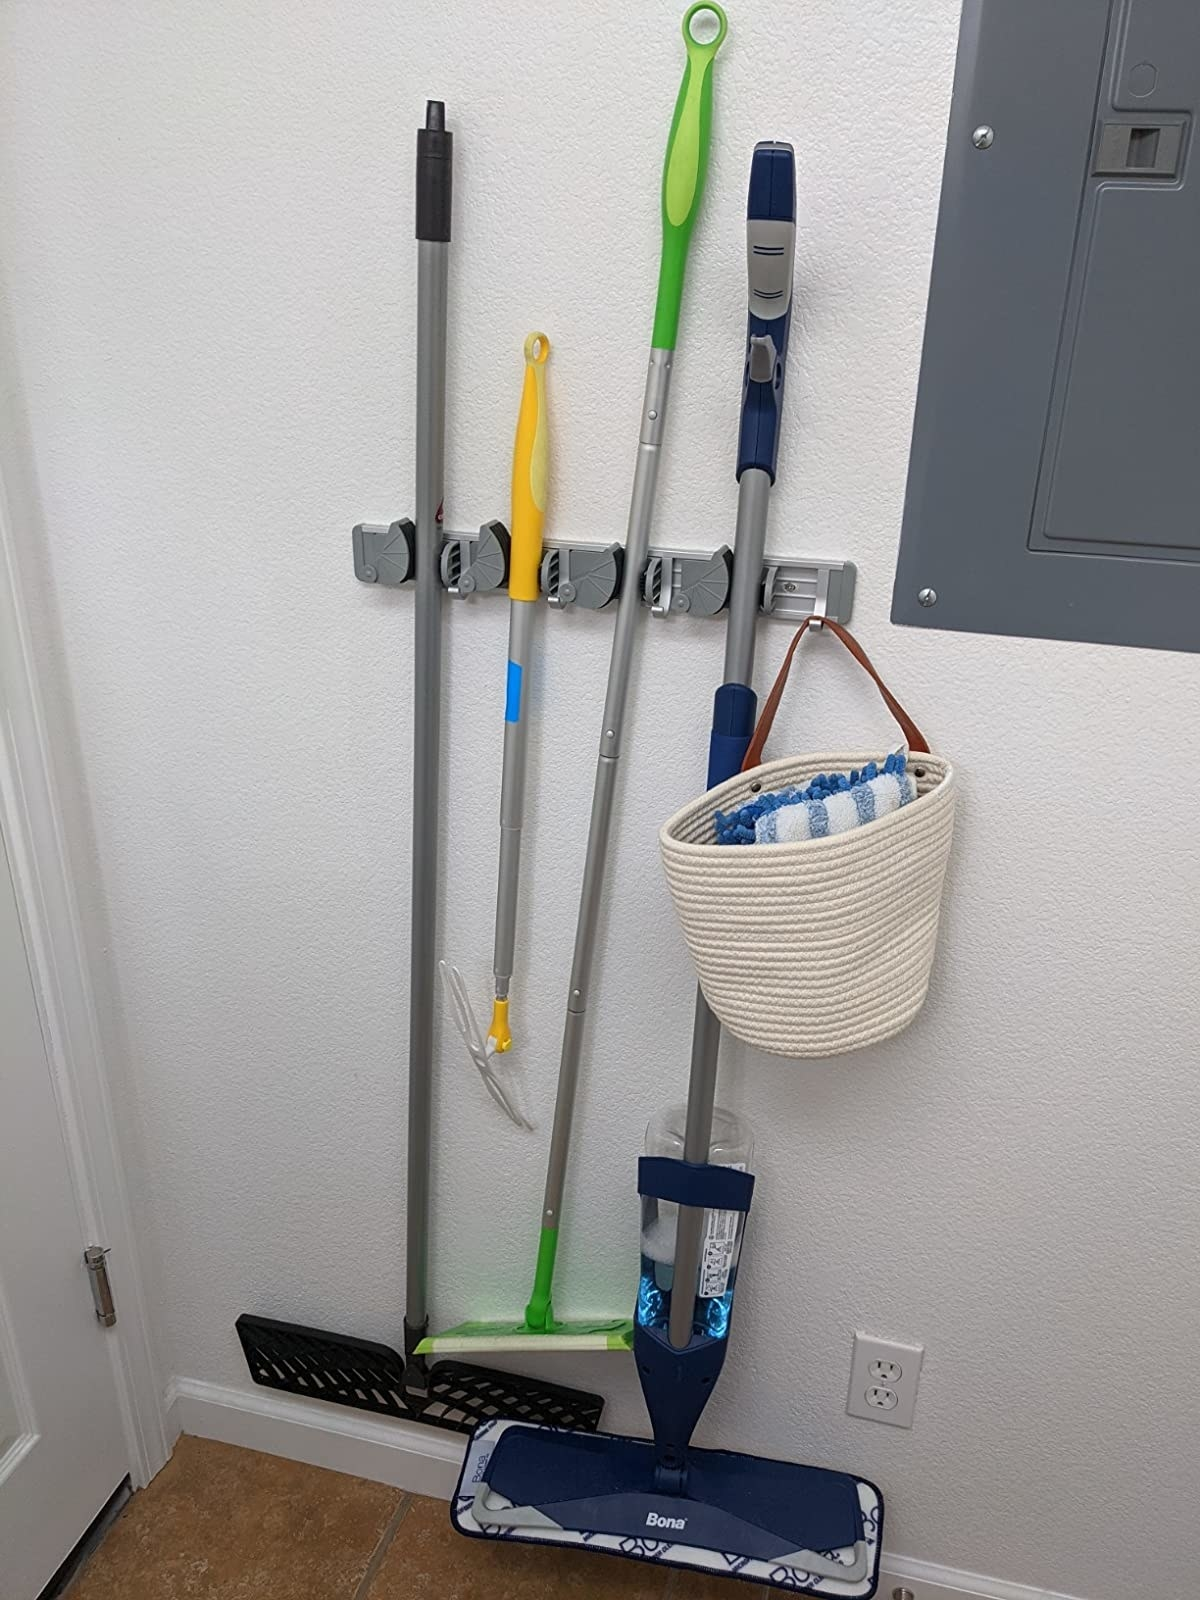 The rack, which holds mops, rooms, and even bags from a series of small, adjustable hooks